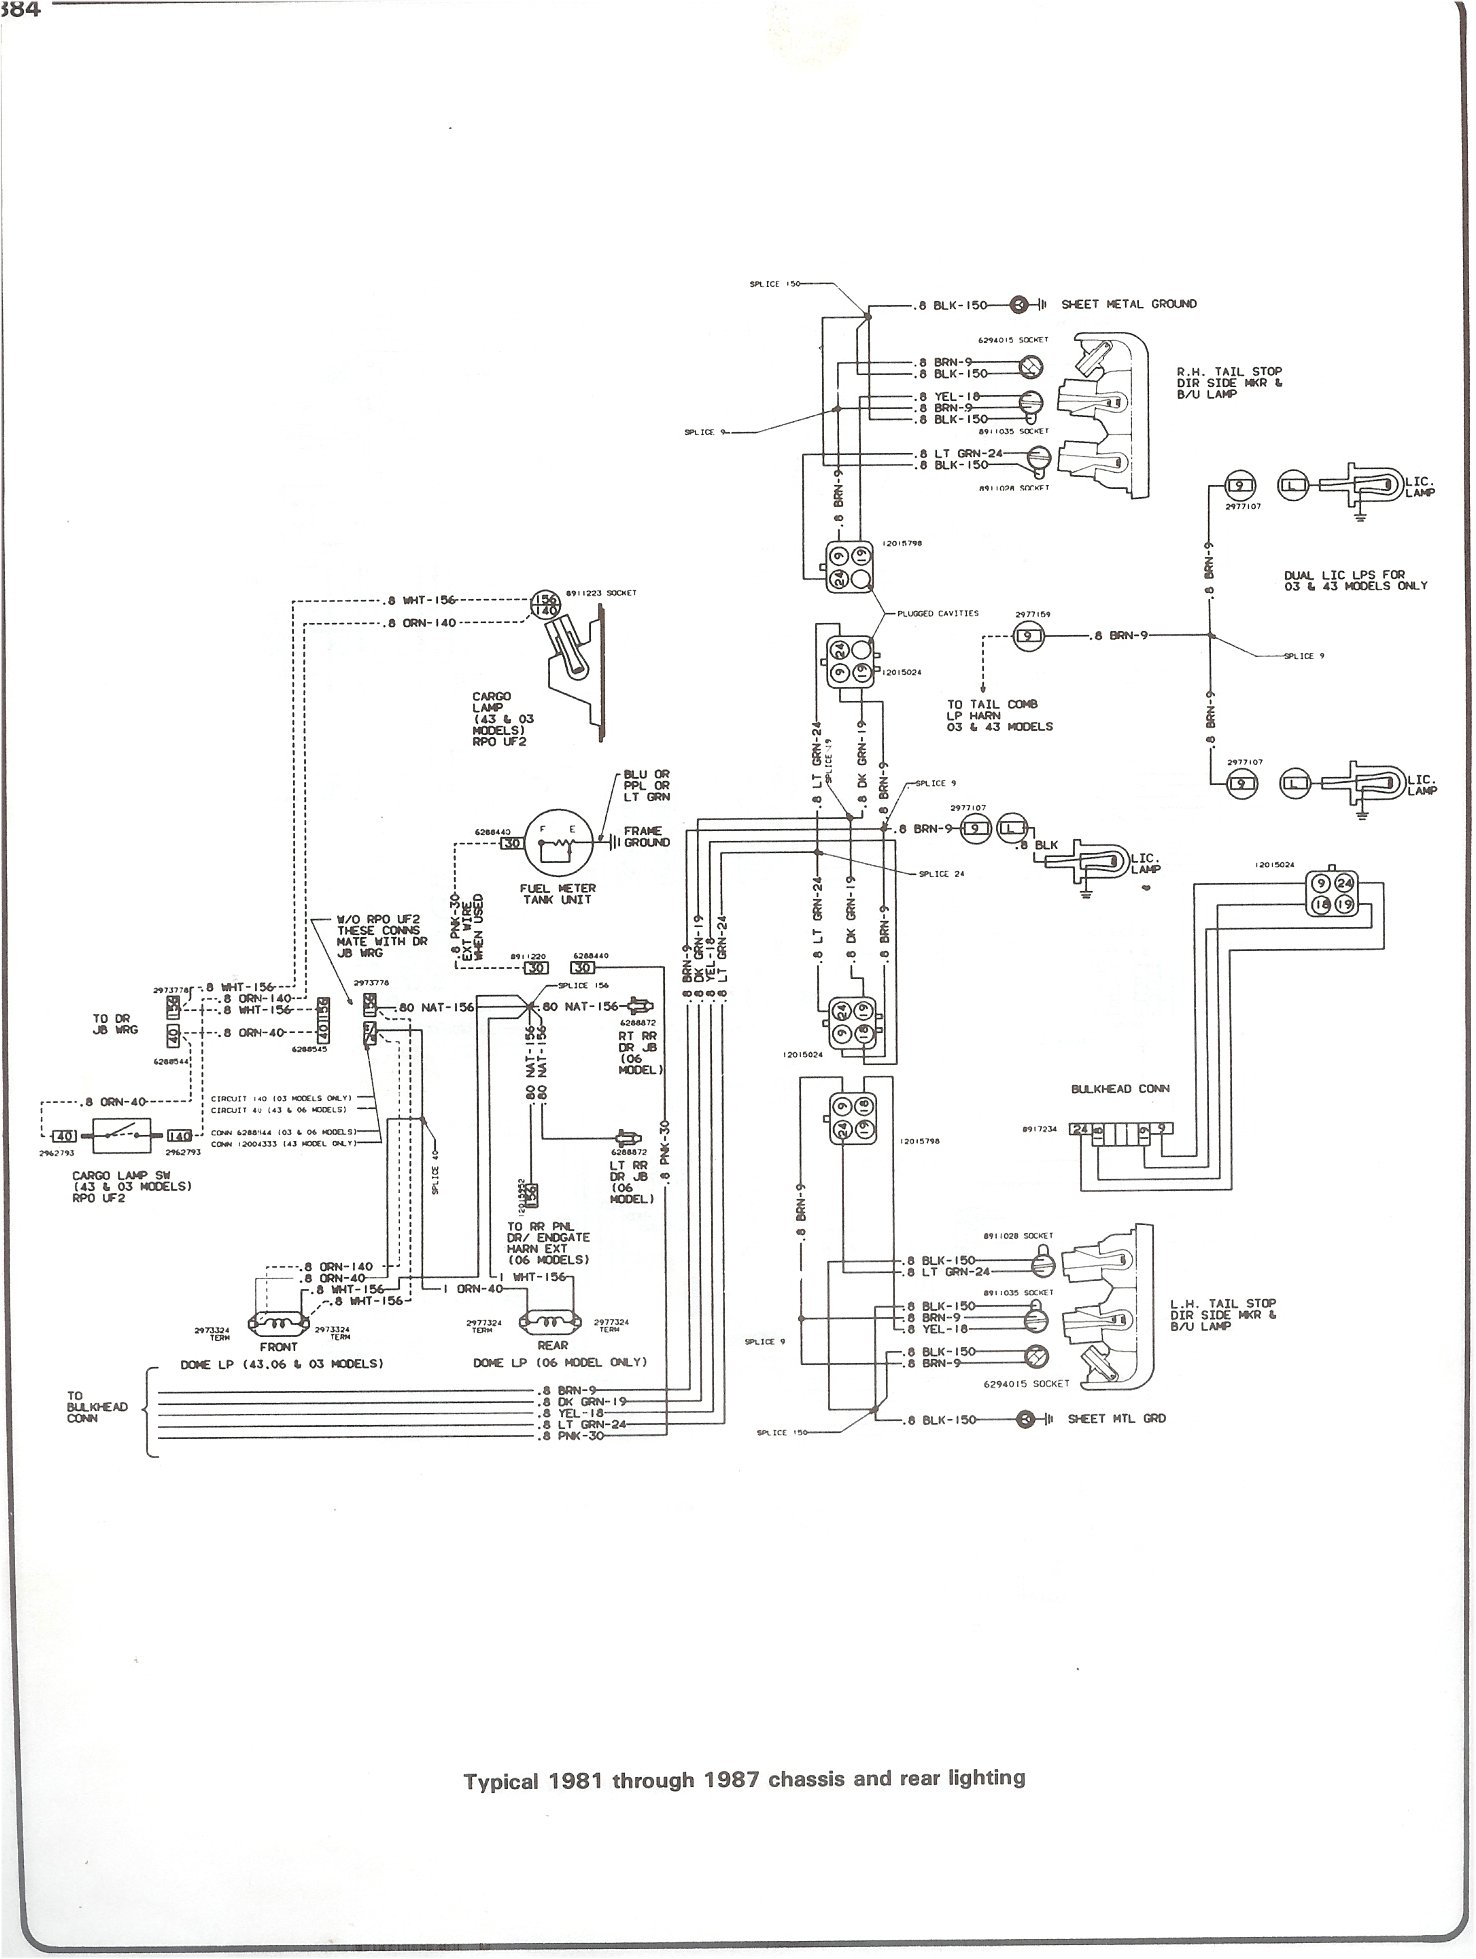 73 87 wiring harness wiring diagram 2001 Monte Carlo SS Wiring-Diagram k5 blazer wiring harness wiring diagram